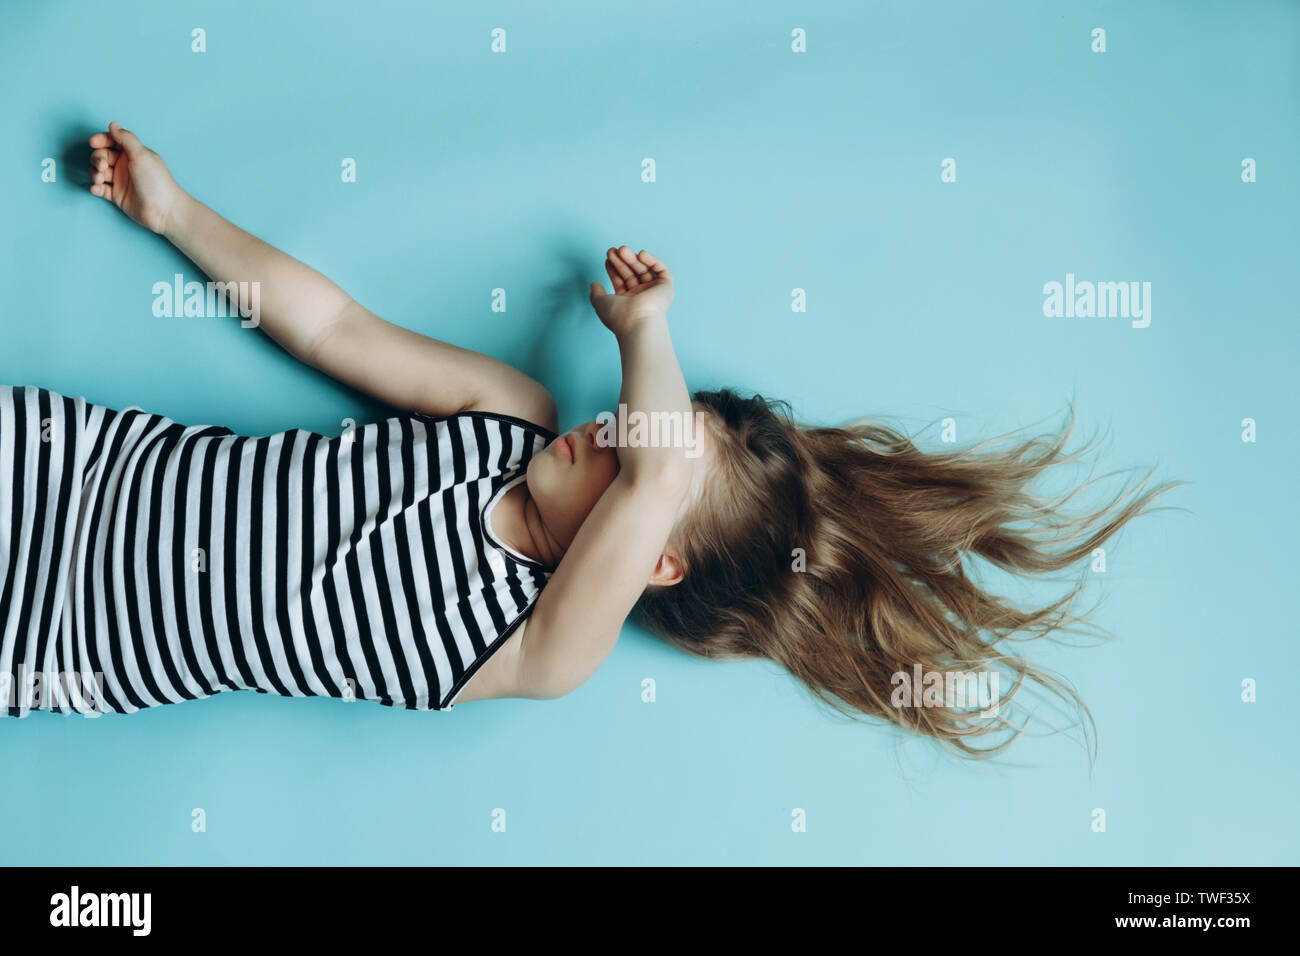 Girl laying on blue background covering face. Child sleeping flat lay top view. Having rest, relaxing. Childhood memories. Beautiful flowing hair. Simple minimalist background, wallpaper Stock Photo